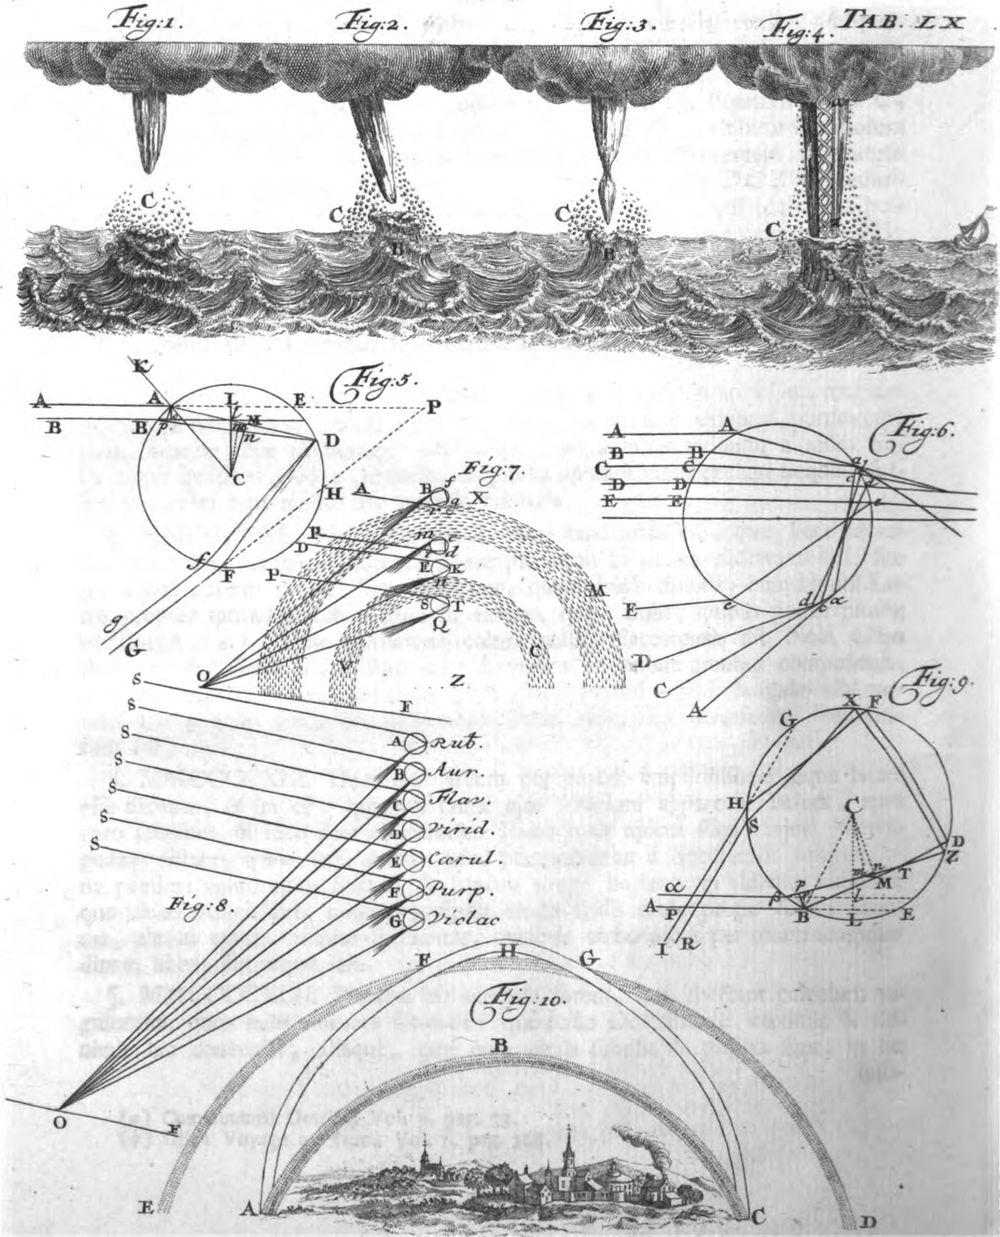 This illustration (Plate XL, p. 517 – 21) of the evolution of a waterspout appeared in second volume of  Introduction to Natural Philosophy  (1762) by  Pieter van Musschenbroek  (1692–1761) a Dutch mathematician and physicist who discovered the principle of the  Leyden jar  about the same time (1745) as  Ewald Georg von Kleist .  source:  van Musschenbroek, P.,  1762:  Introductio ad Philosophiam Naturalem , vol. II, Lugduni Batavorum, Apud Sam. et Joh. Luchtmans, pp. 655. via  Google Books